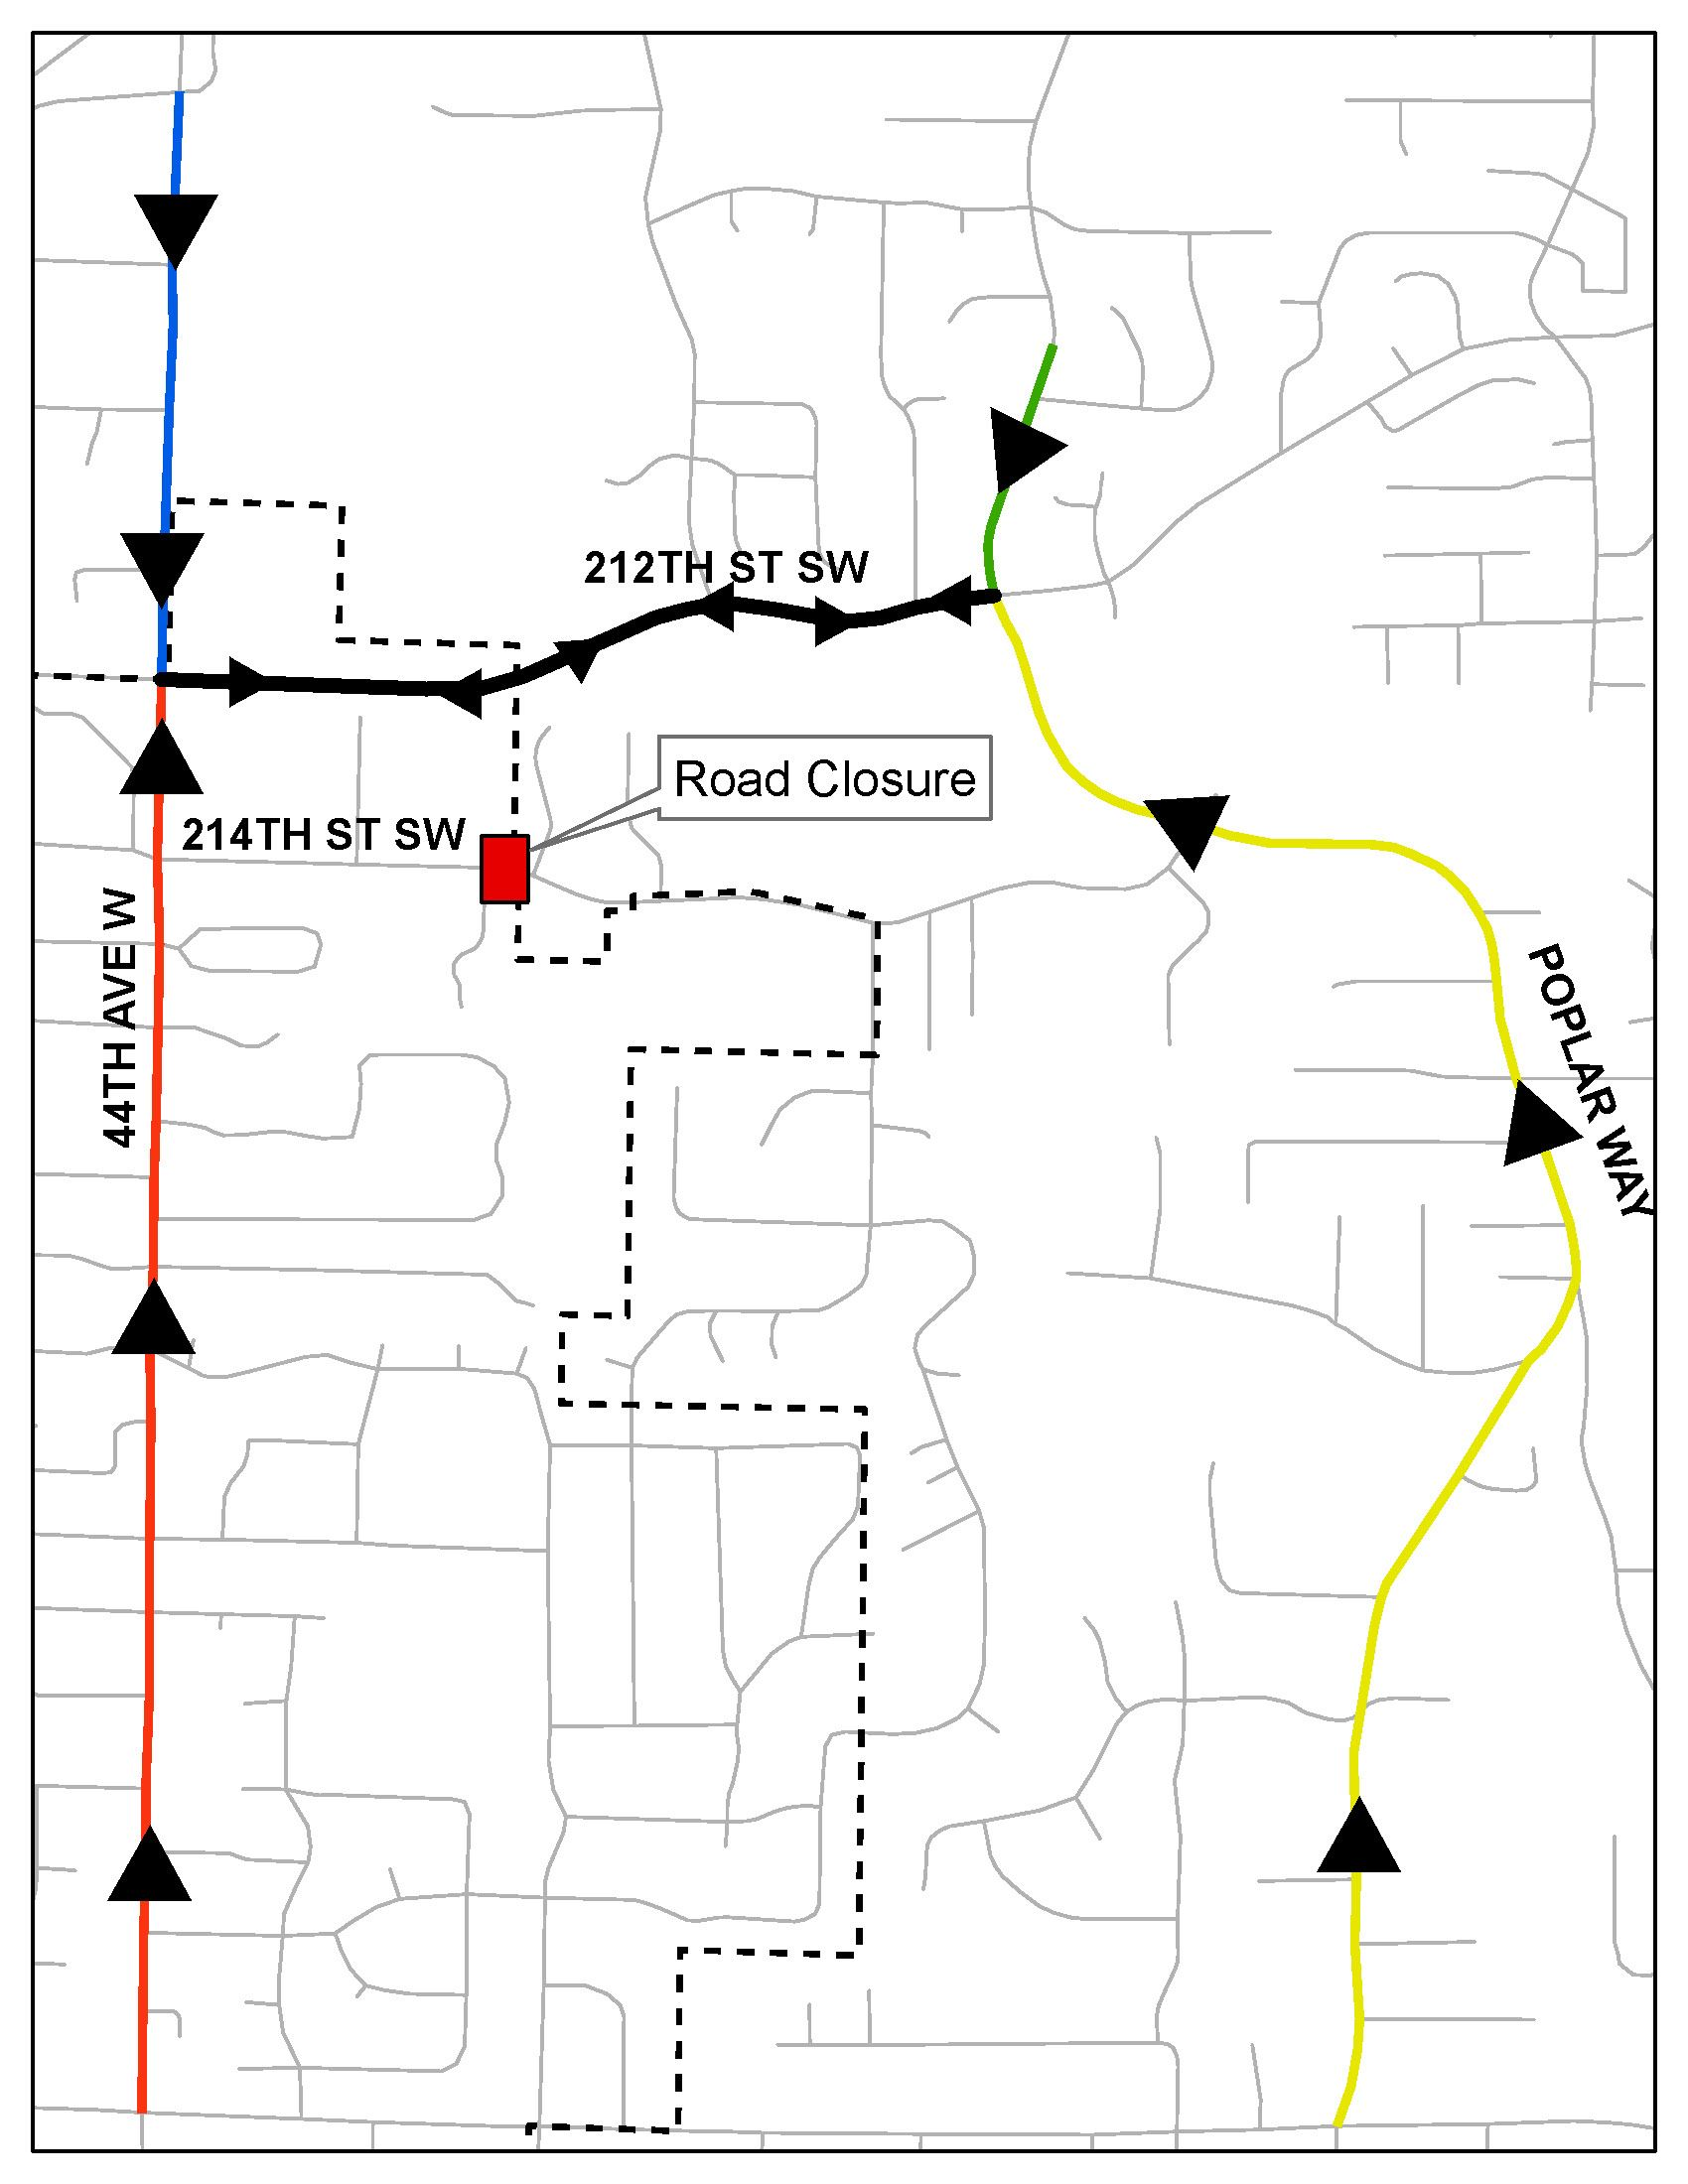 Detour Map for 214th Street SW Road Closure